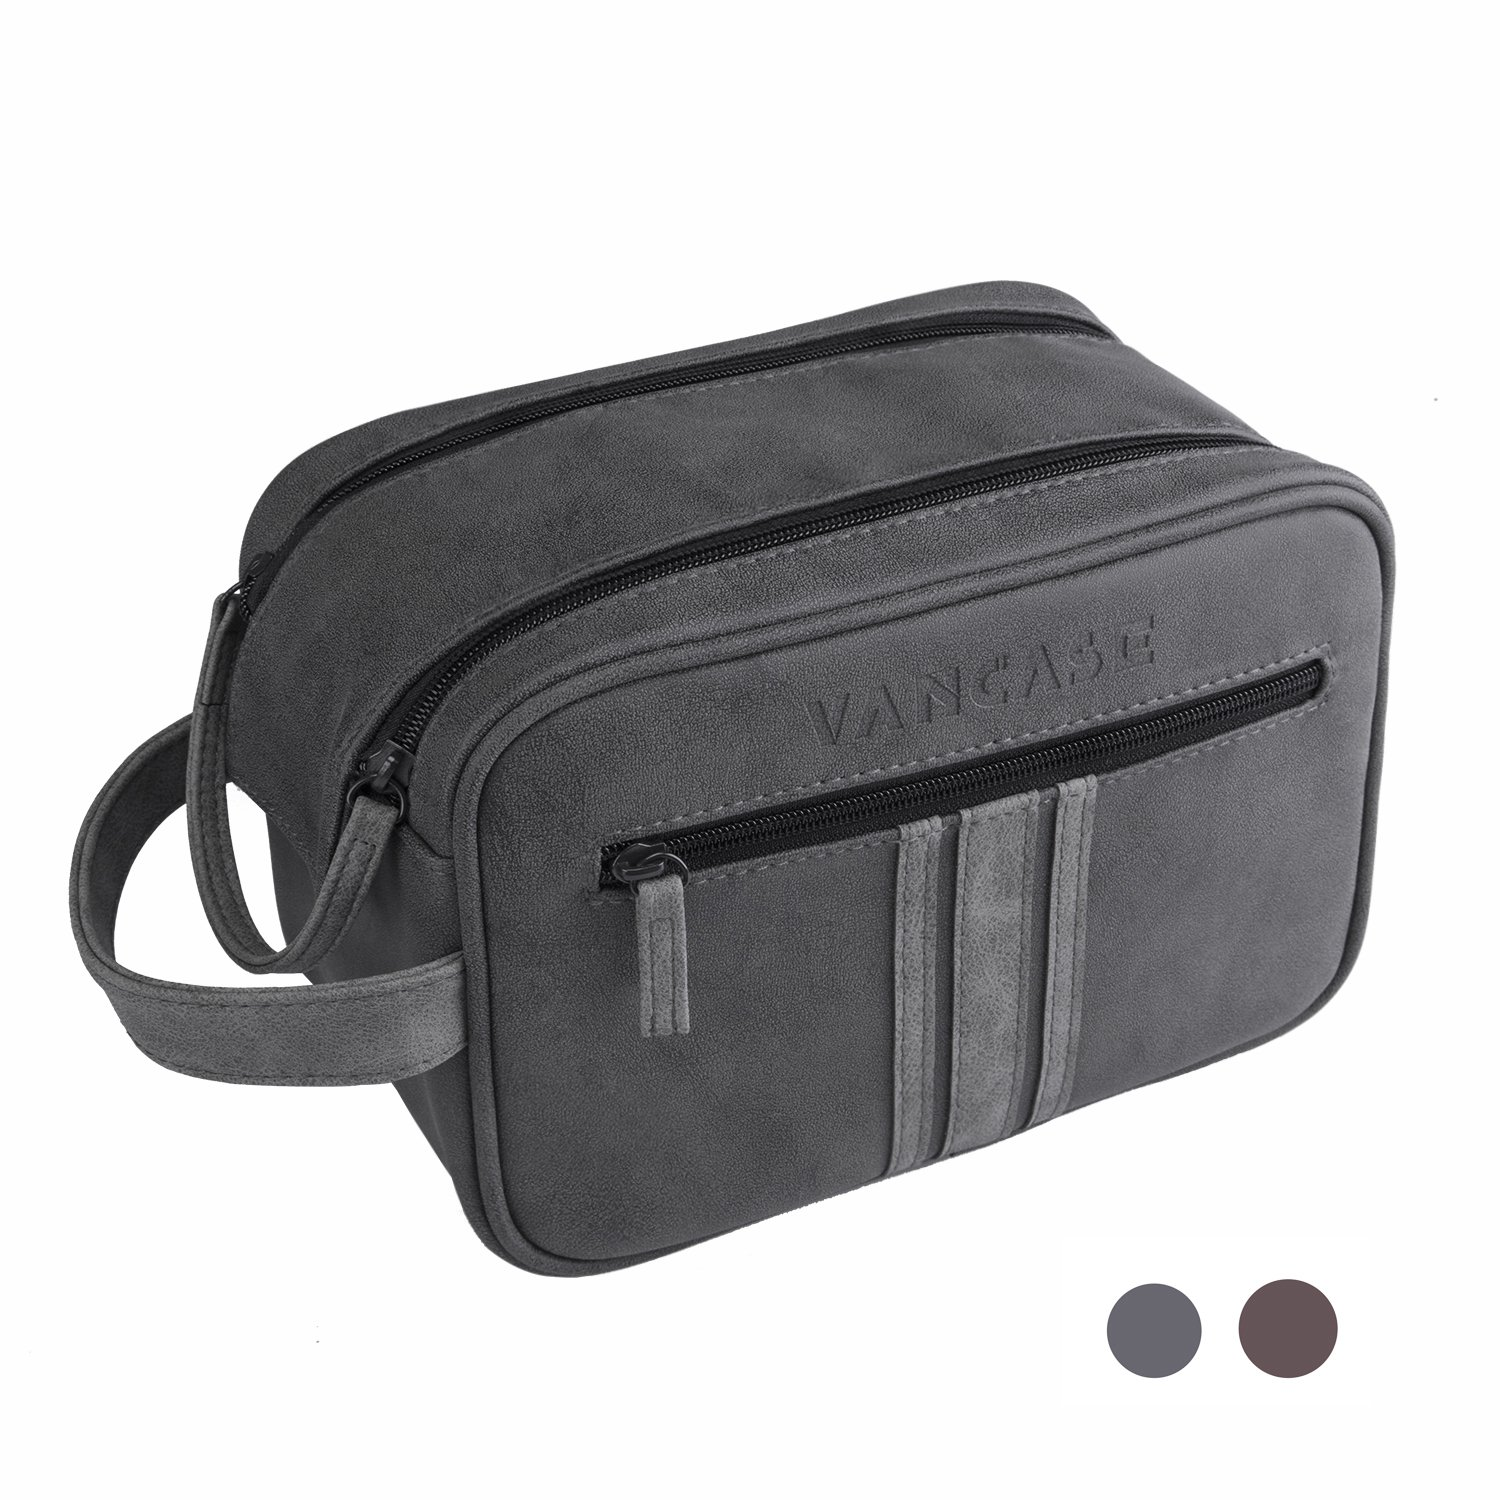 Travel Toiletry Bag for Men, Vancase Vintage Leather Dopp Kit, Large Waterproof Shaving bags, Portable Bathroom Organizer with Connected Zipper Puller (Dark Gray)